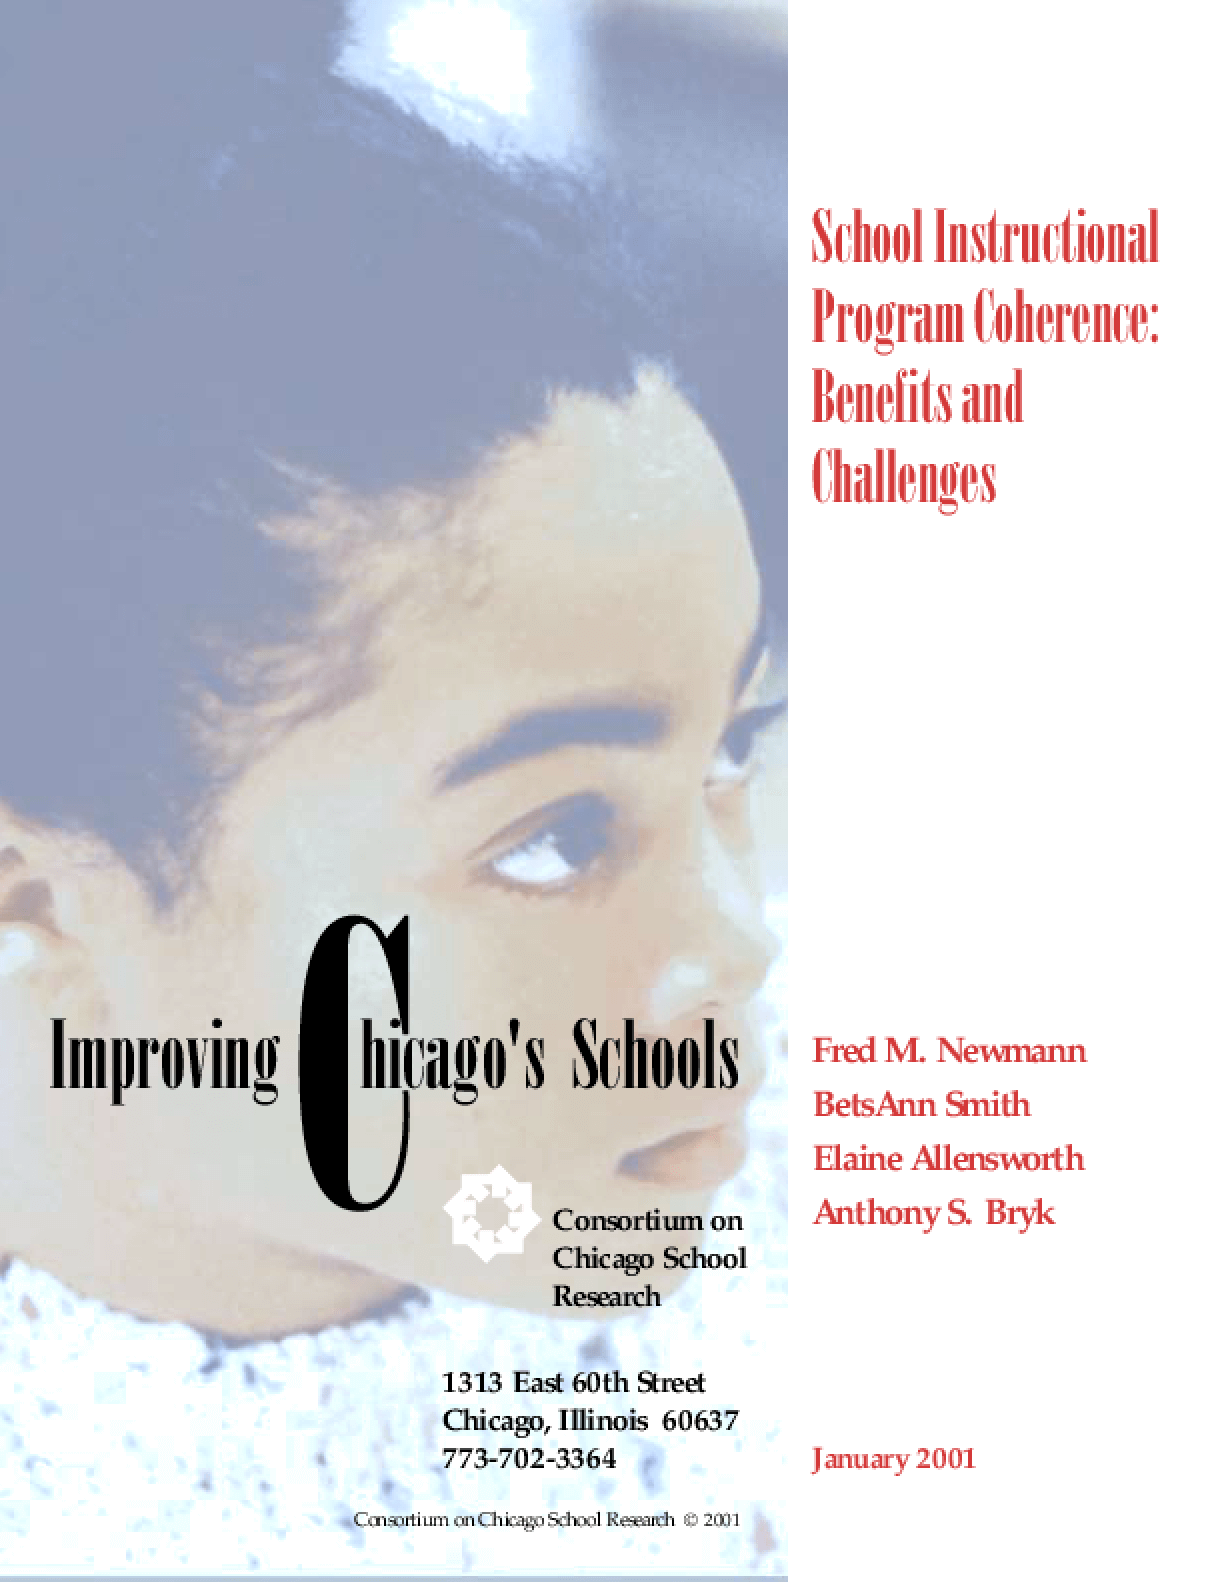 School Instructional Program Coherence: Benefits and Challenges